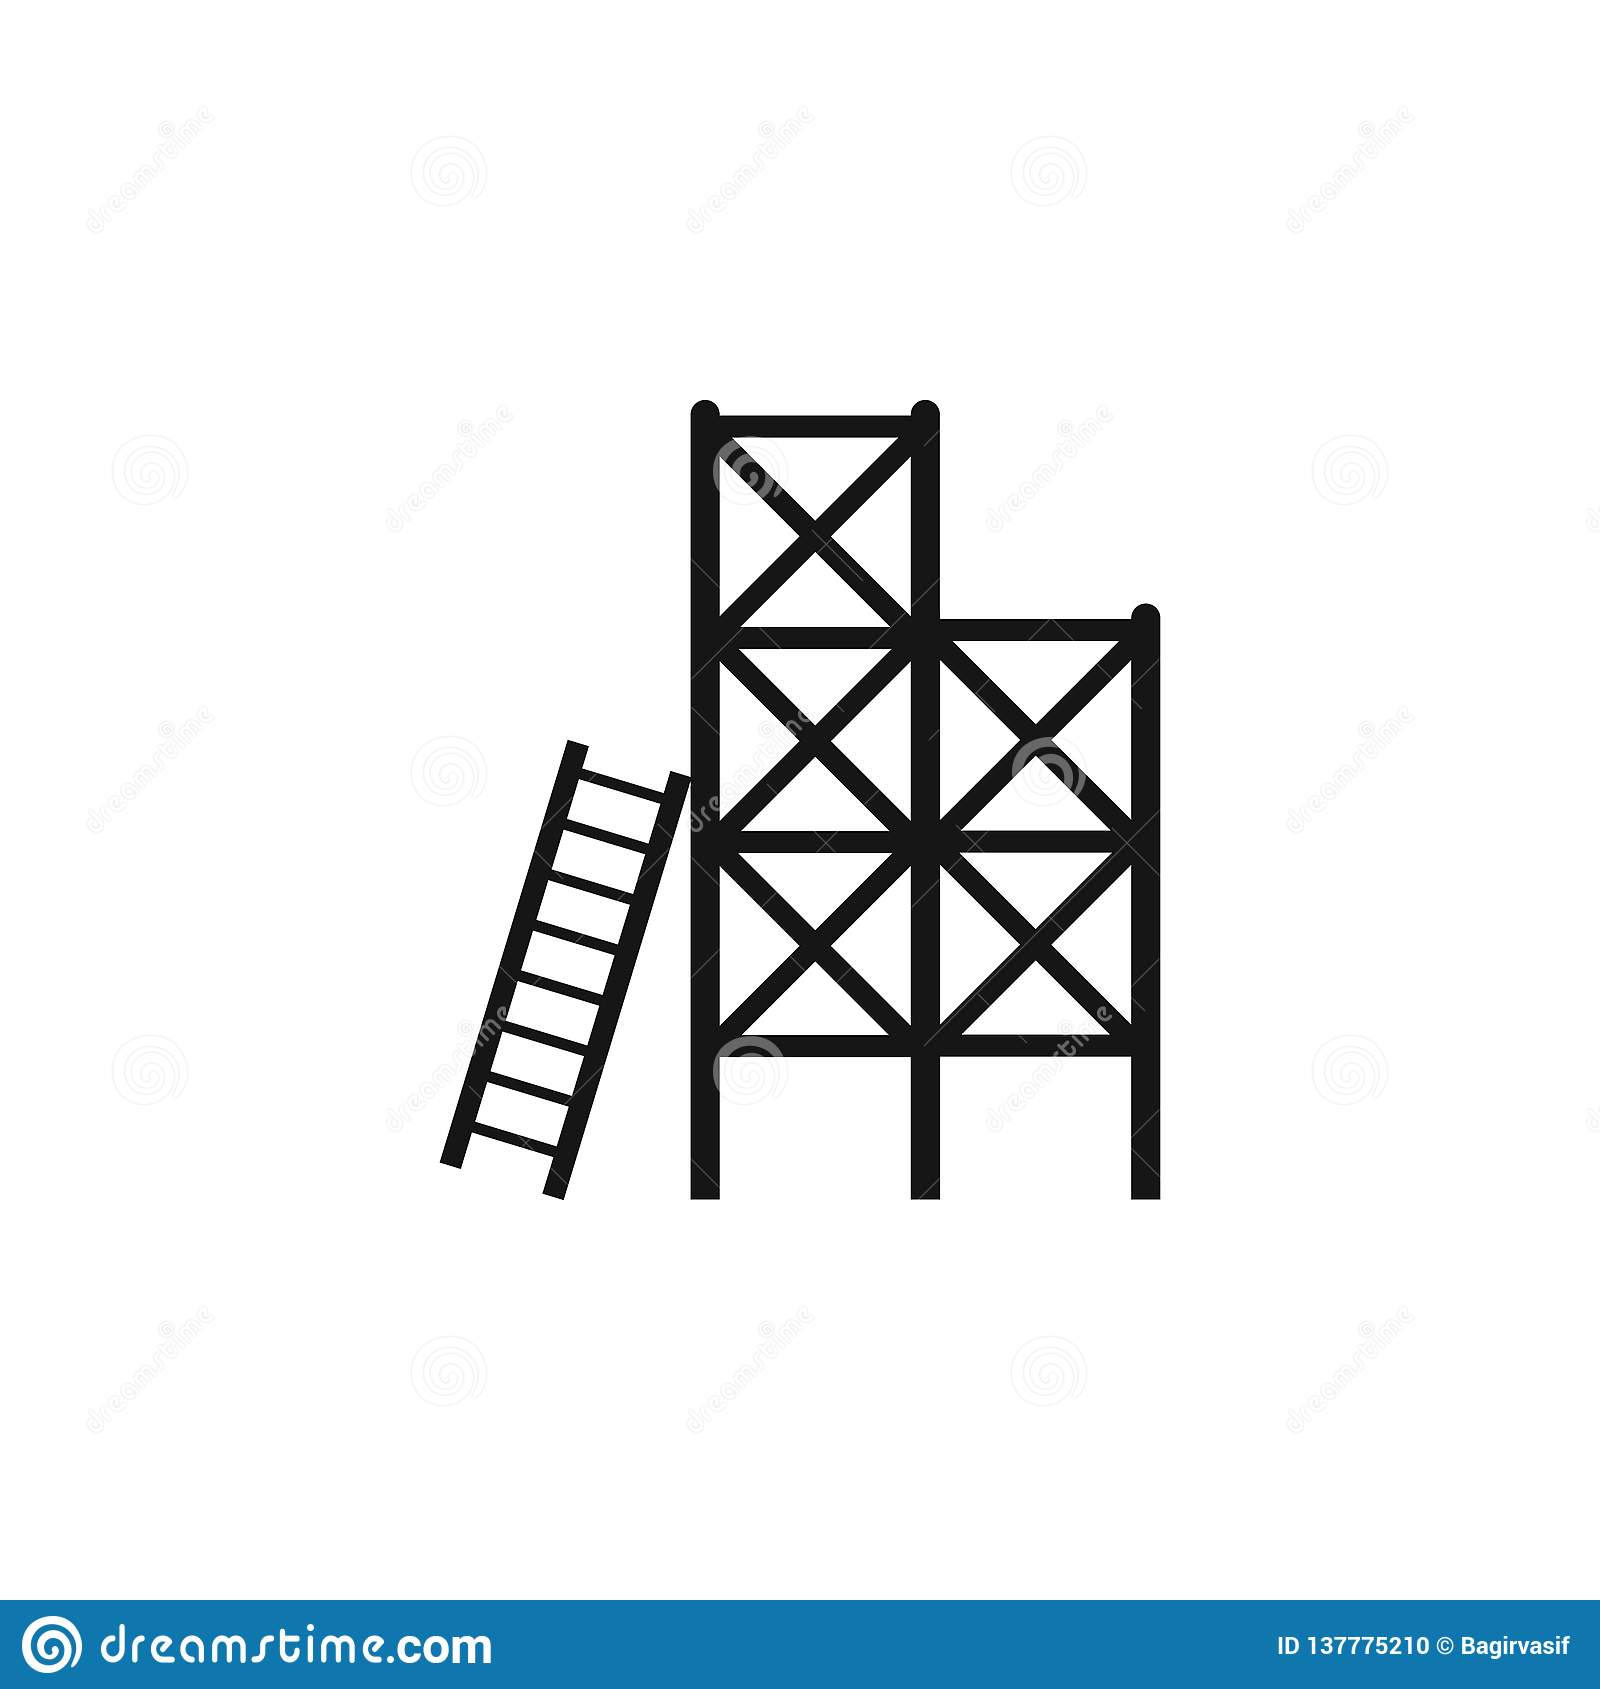 Scaffolding vector icon isolated on transparent background, Scaffolding logo concept. Ladder, scaffold, stairs, steps